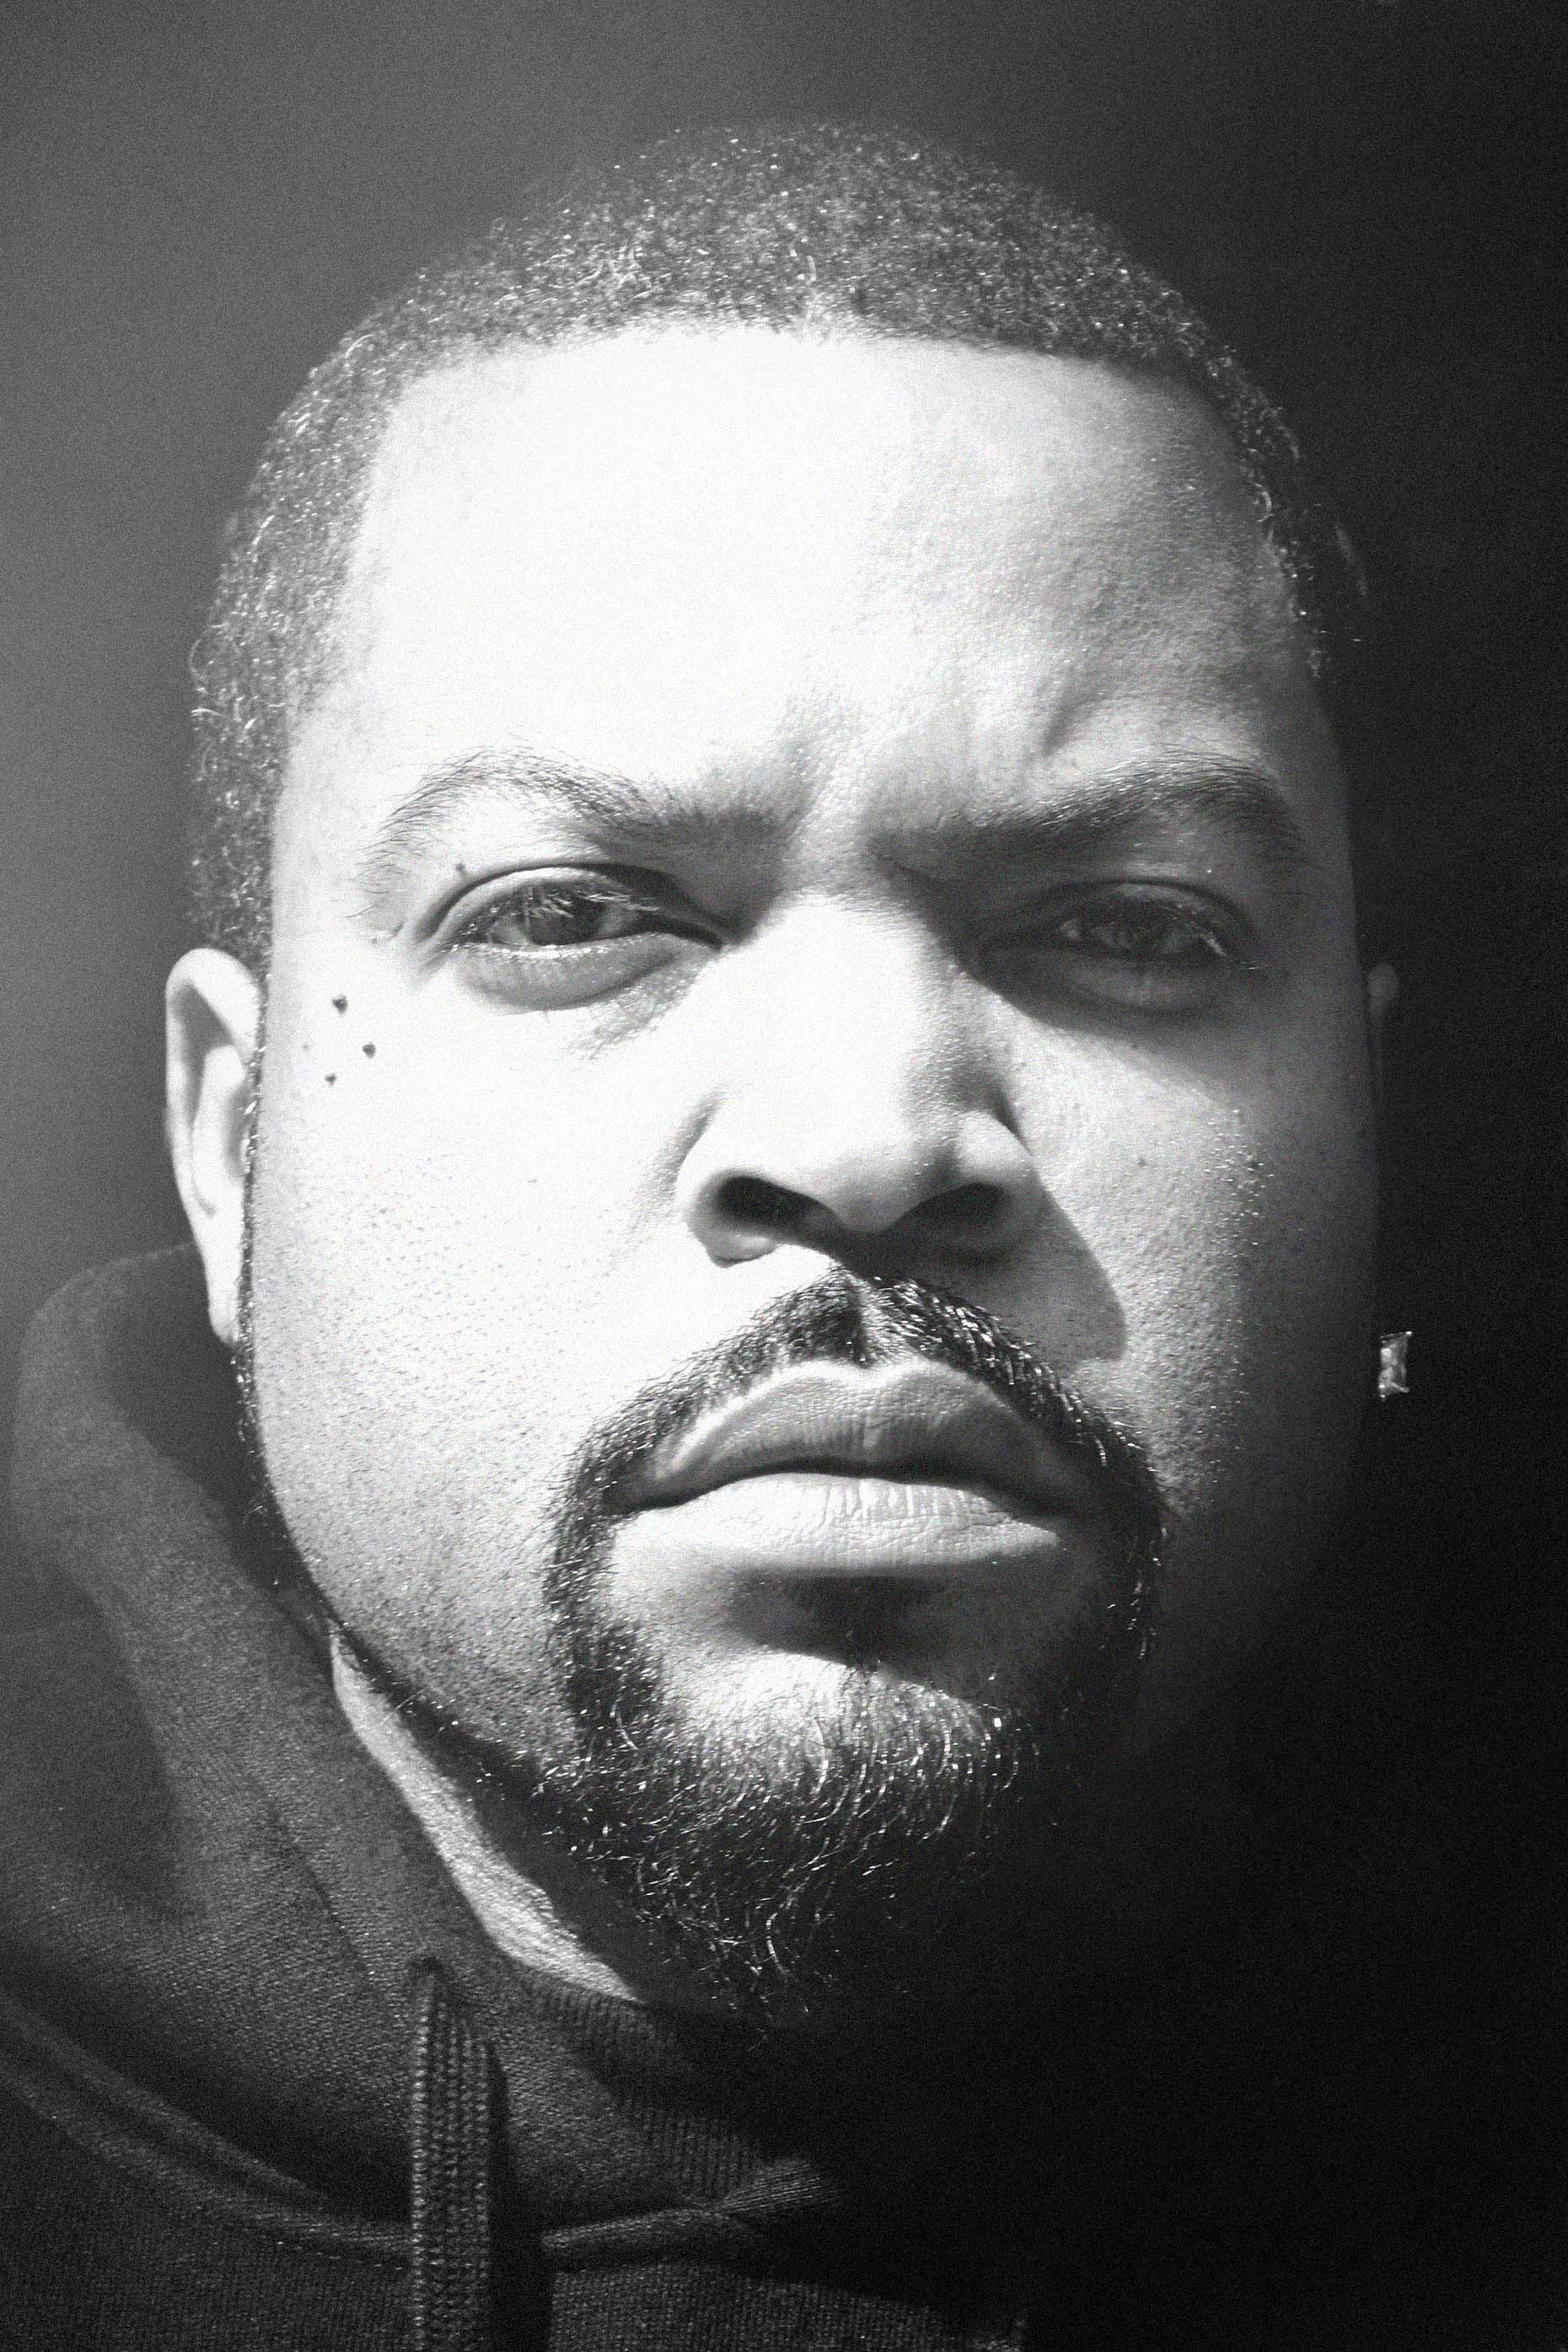 17-kelly-stuart-portraits-ice-cube-2-b2